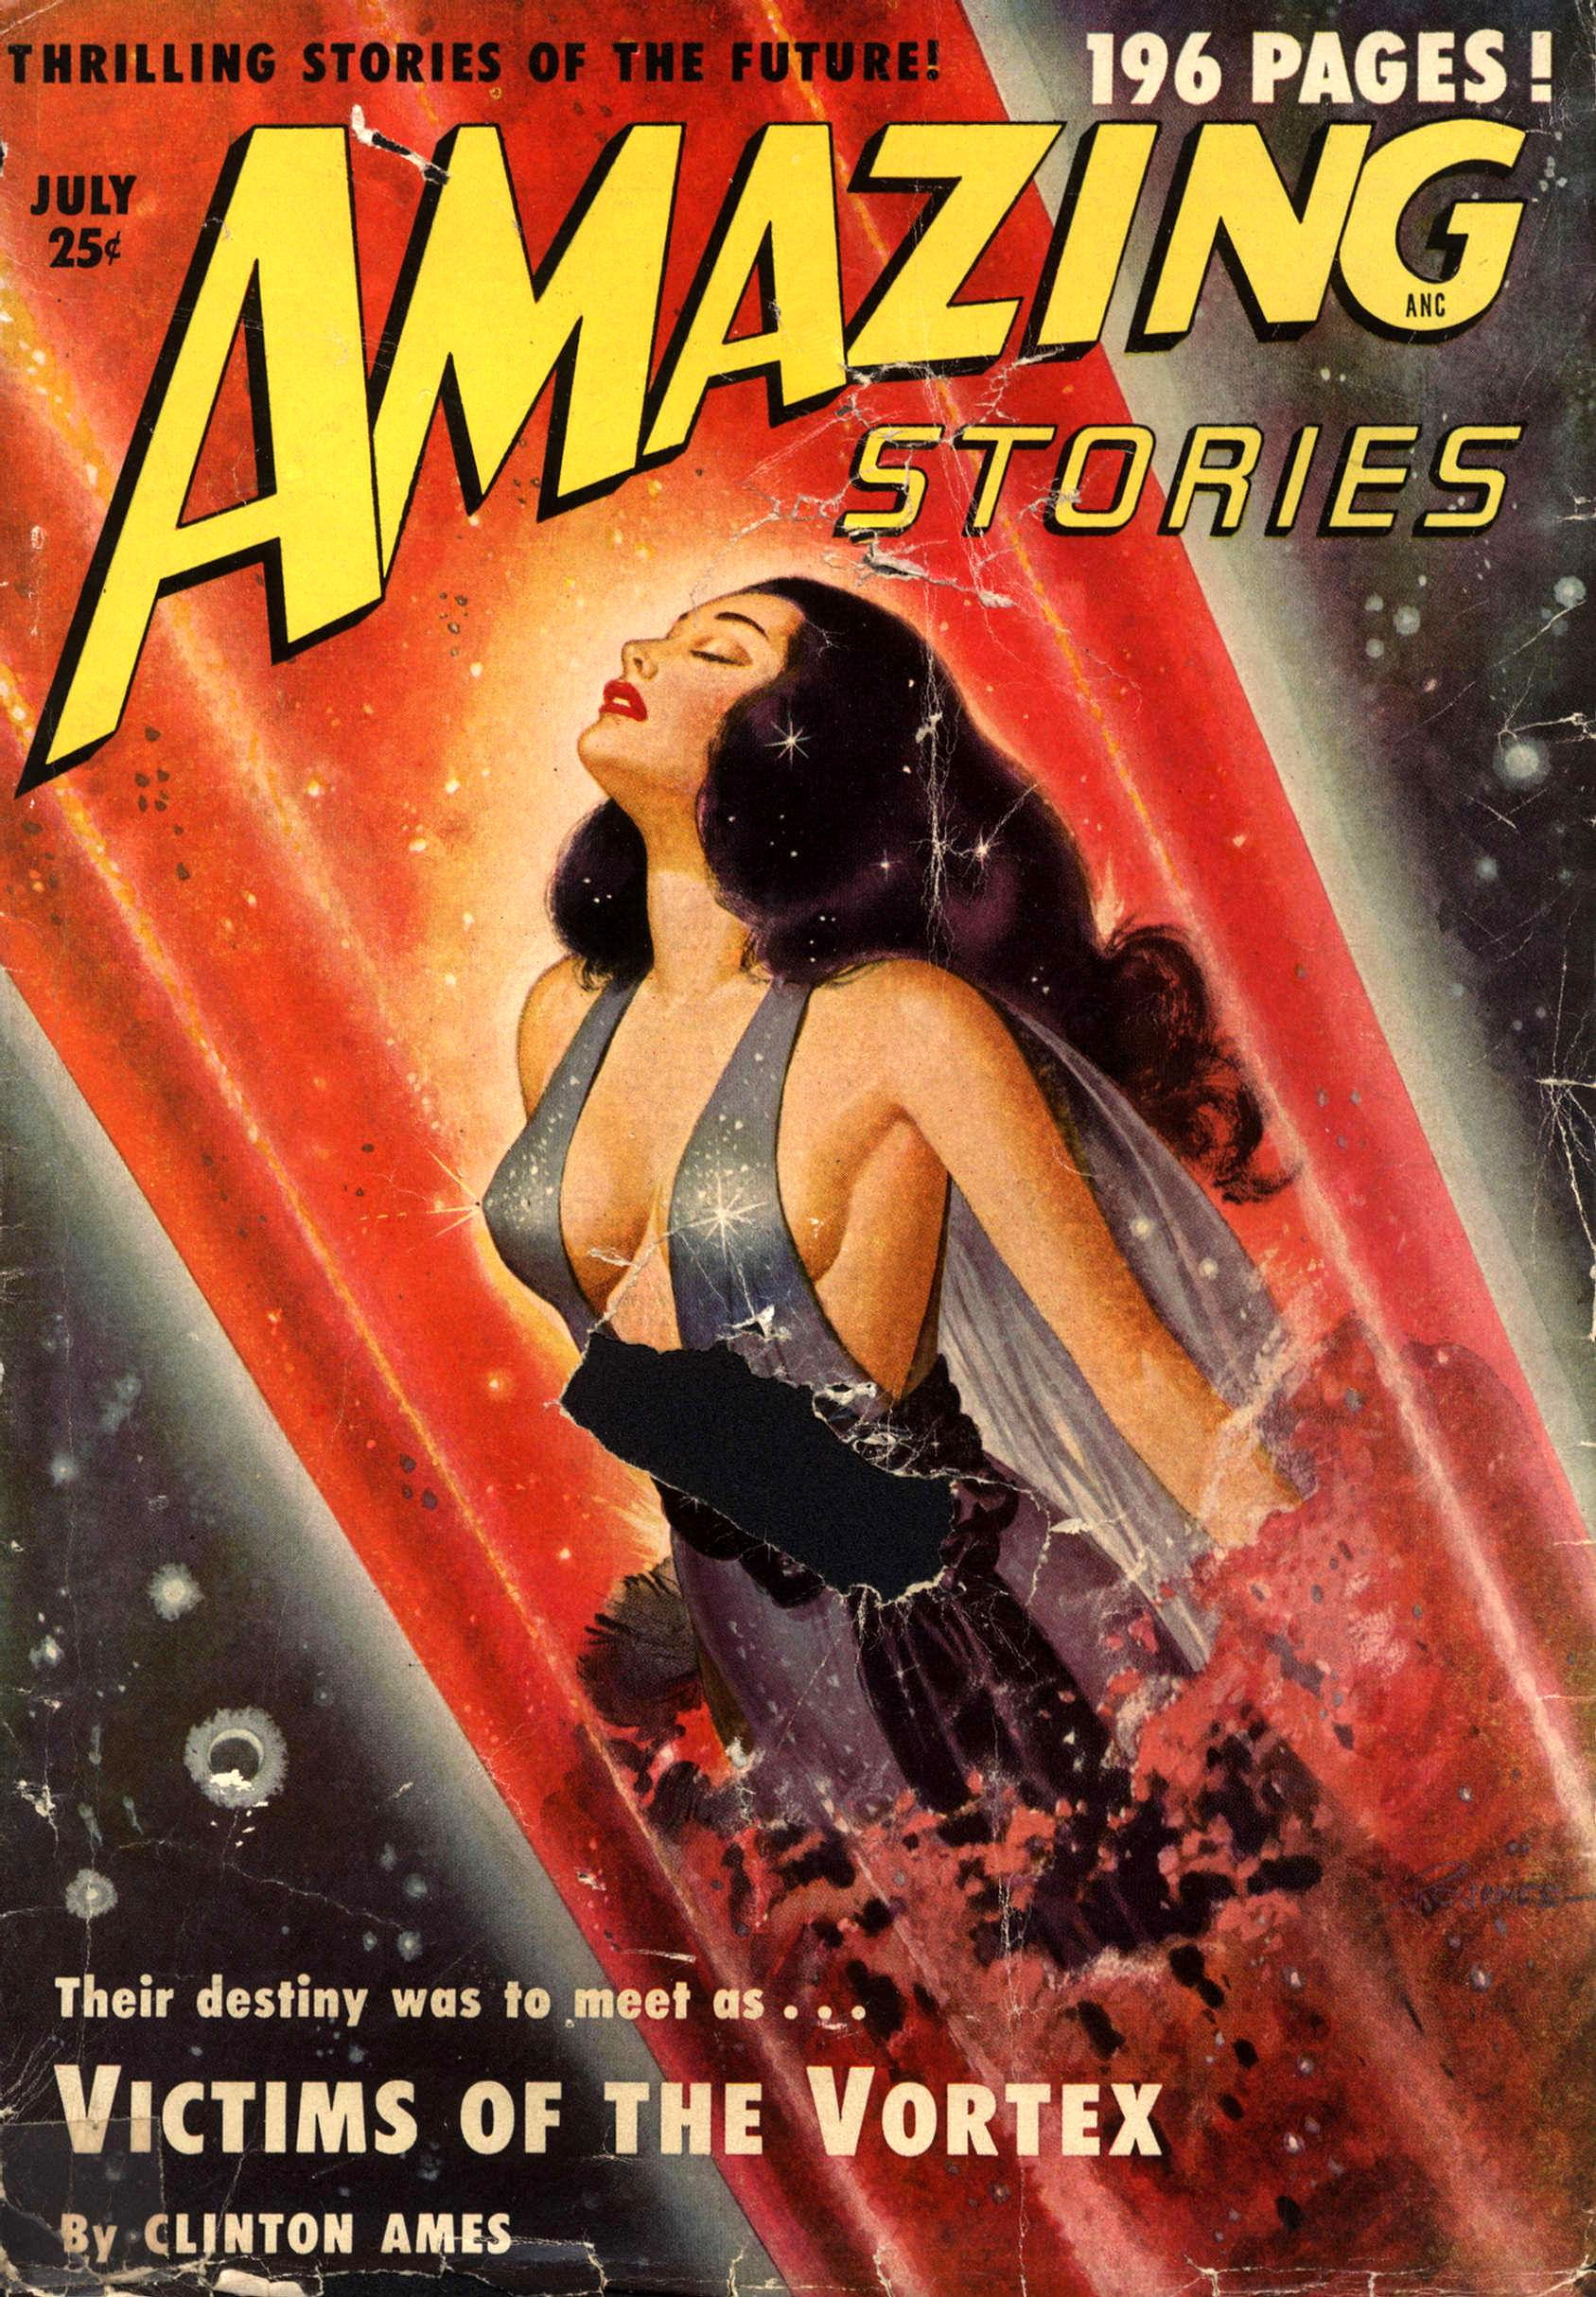 AMAZING STORIES // pulp art vintage science fiction cover paperback